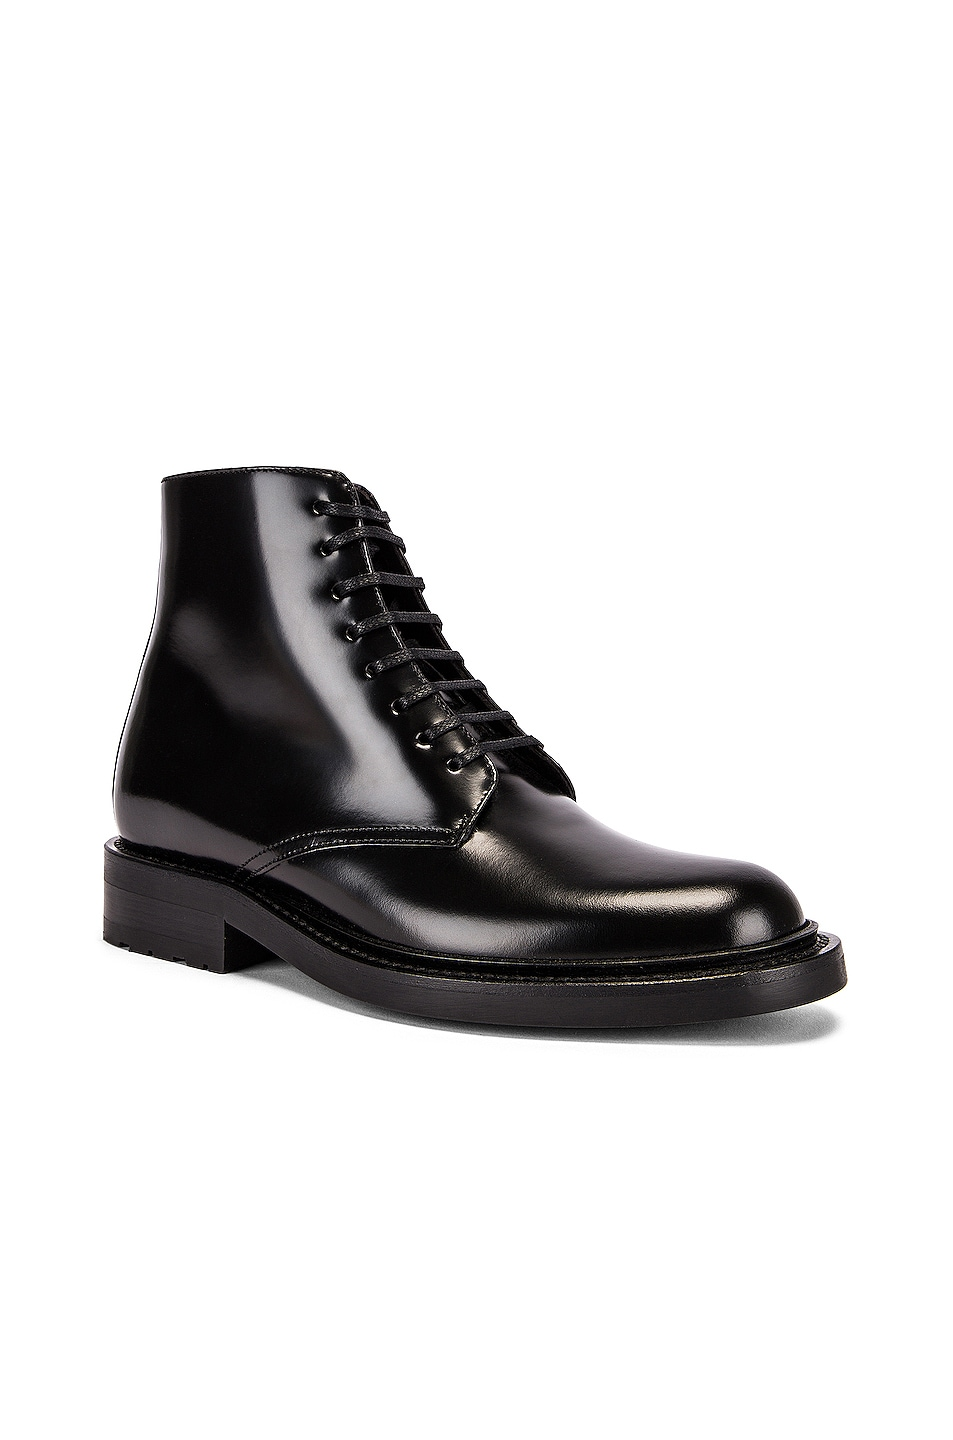 Image 2 of Saint Laurent Army Lace Up Leather Booties in Black